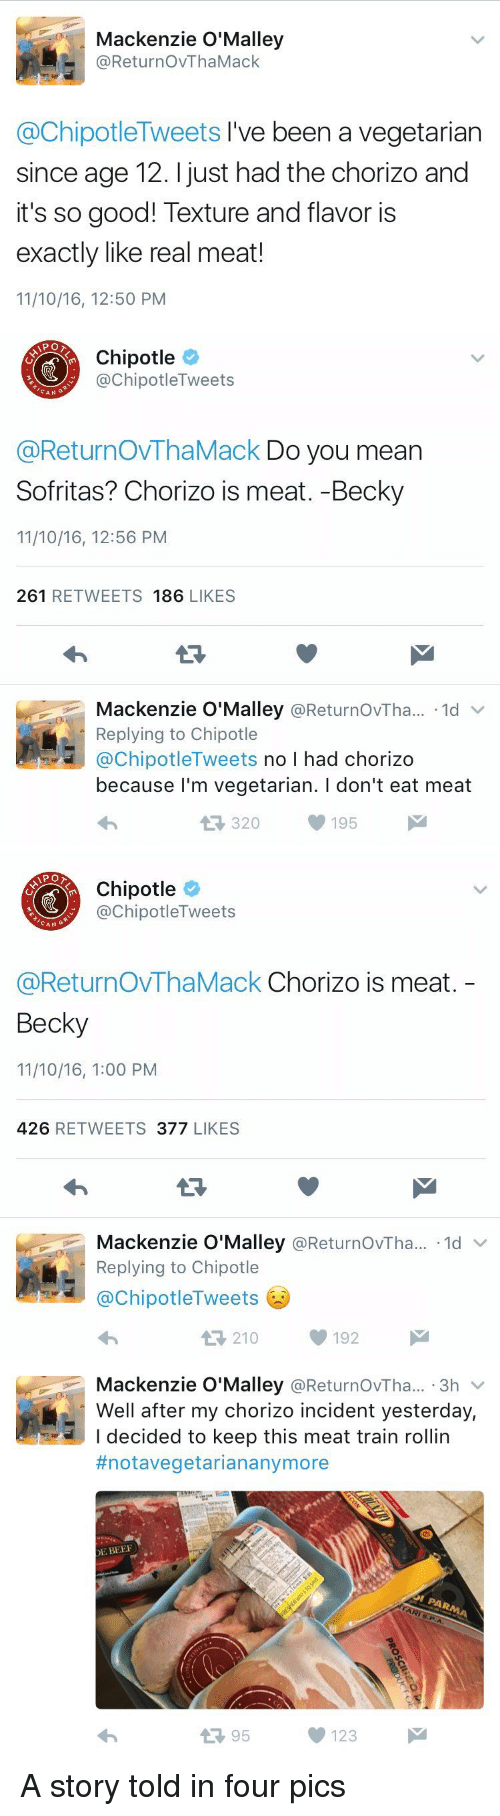 mackenzie: Mackenzie O'Malley  @ReturnovThaMack  @Chipotle Tweets I've been a vegetarian  since age 12. just had the chorizo and  it's so good! Texture and flavor is  exactly like real meat!  11/10/16, 12:50 PM   Chipotle  Tweets  nipotle CAN  @ReturnovThaMack Do you mean  Sofritas? Chorizo is meat. -Becky  11/10/16, 12:56 PM  261  RETWEETS 186  LIKES  Mackenzie O'Malley  @ReturnovTha... 1d  v  Replying to Chipotle  @Chipotle Tweets  no I had chorizo  because I'm vegetarian. l don't eat meat  195  M  320   Chipotle  ChipotleTweets  CAN  G  @ReturnovThaMack Chorizo is meat  Becky  11/10/16, 1:00 PM  426  RETWEETS  377  LIKES  Mackenzie O'Malley  ReturnovTha... 1d  Replying to Chipotle  @Chipotle Tweets  210  192   Mackenzie O'Malley  ReturnovTha... 3h  V  Well after my chorizo incident yesterday,  I decided to keep this meat train rollin  #notavegetarian anymore  DE BEEF  95  123 A story told in four pics